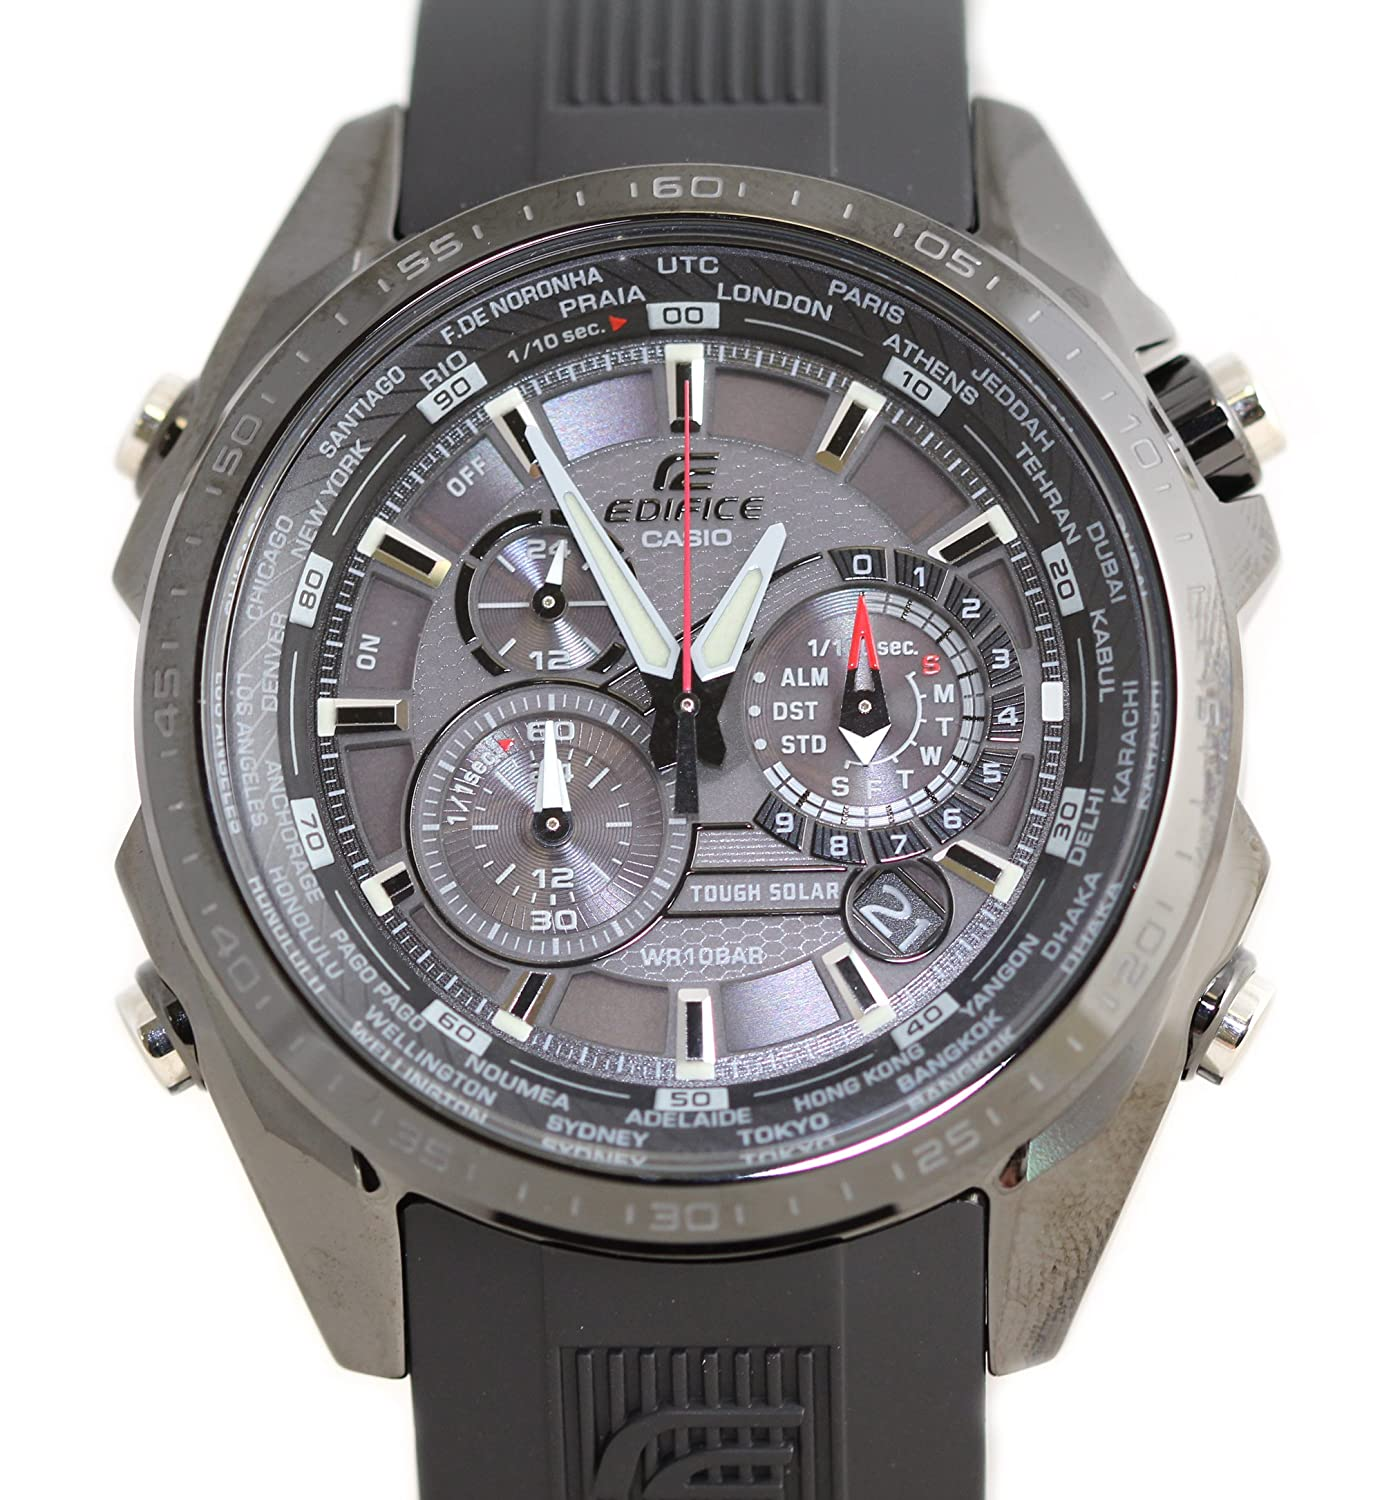 Black Stainless Steel Solar Edifice Black Label Chronograph World Time Analog Strap: Amazon.es: Relojes